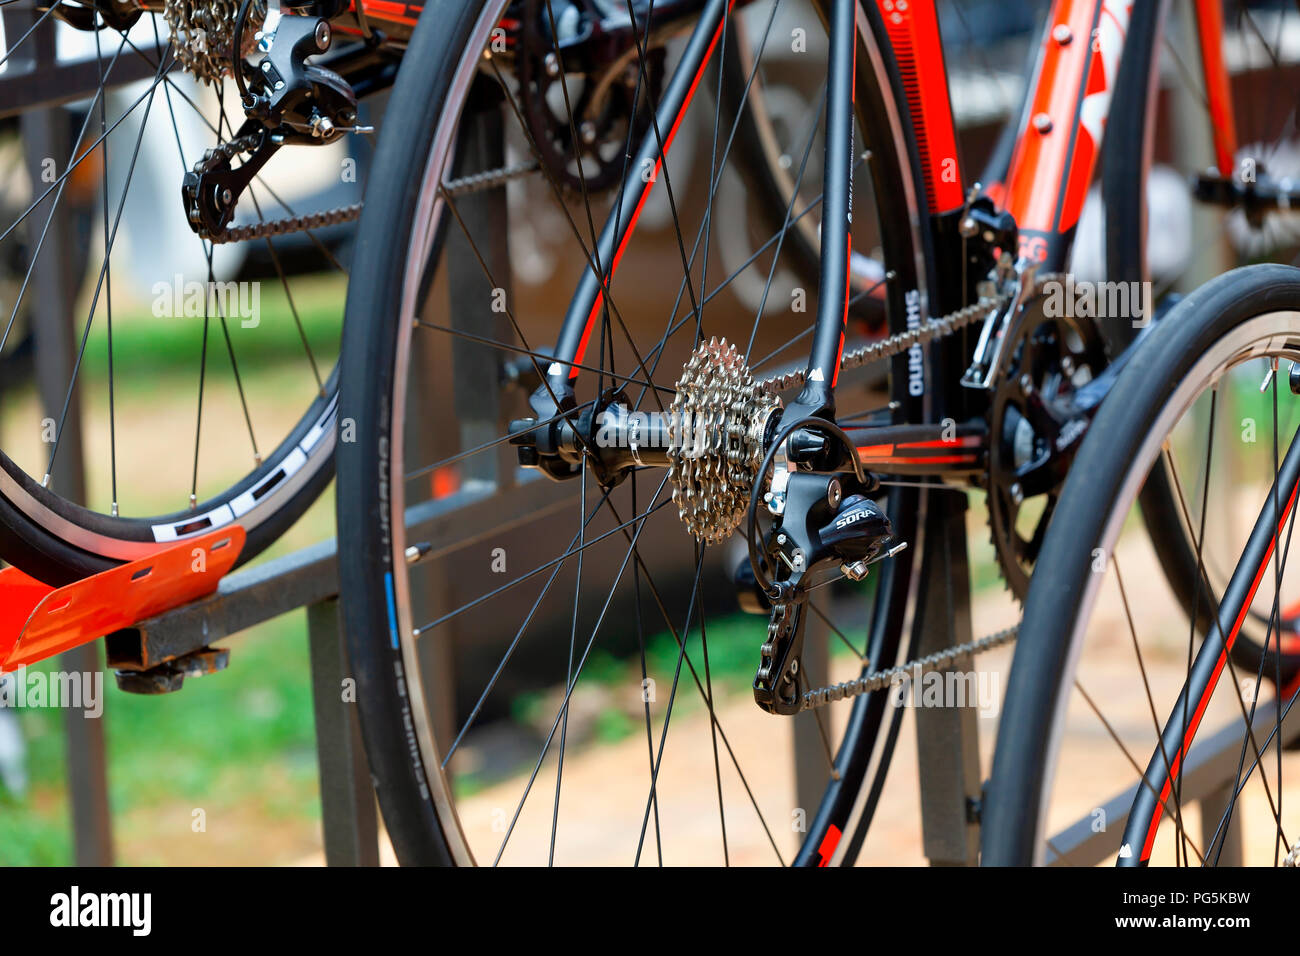 Shimano Sora model bicycle gearbox exhibited at the Fair Trade of Gijon 2018. August 18, 2018. Spain. - Stock Image